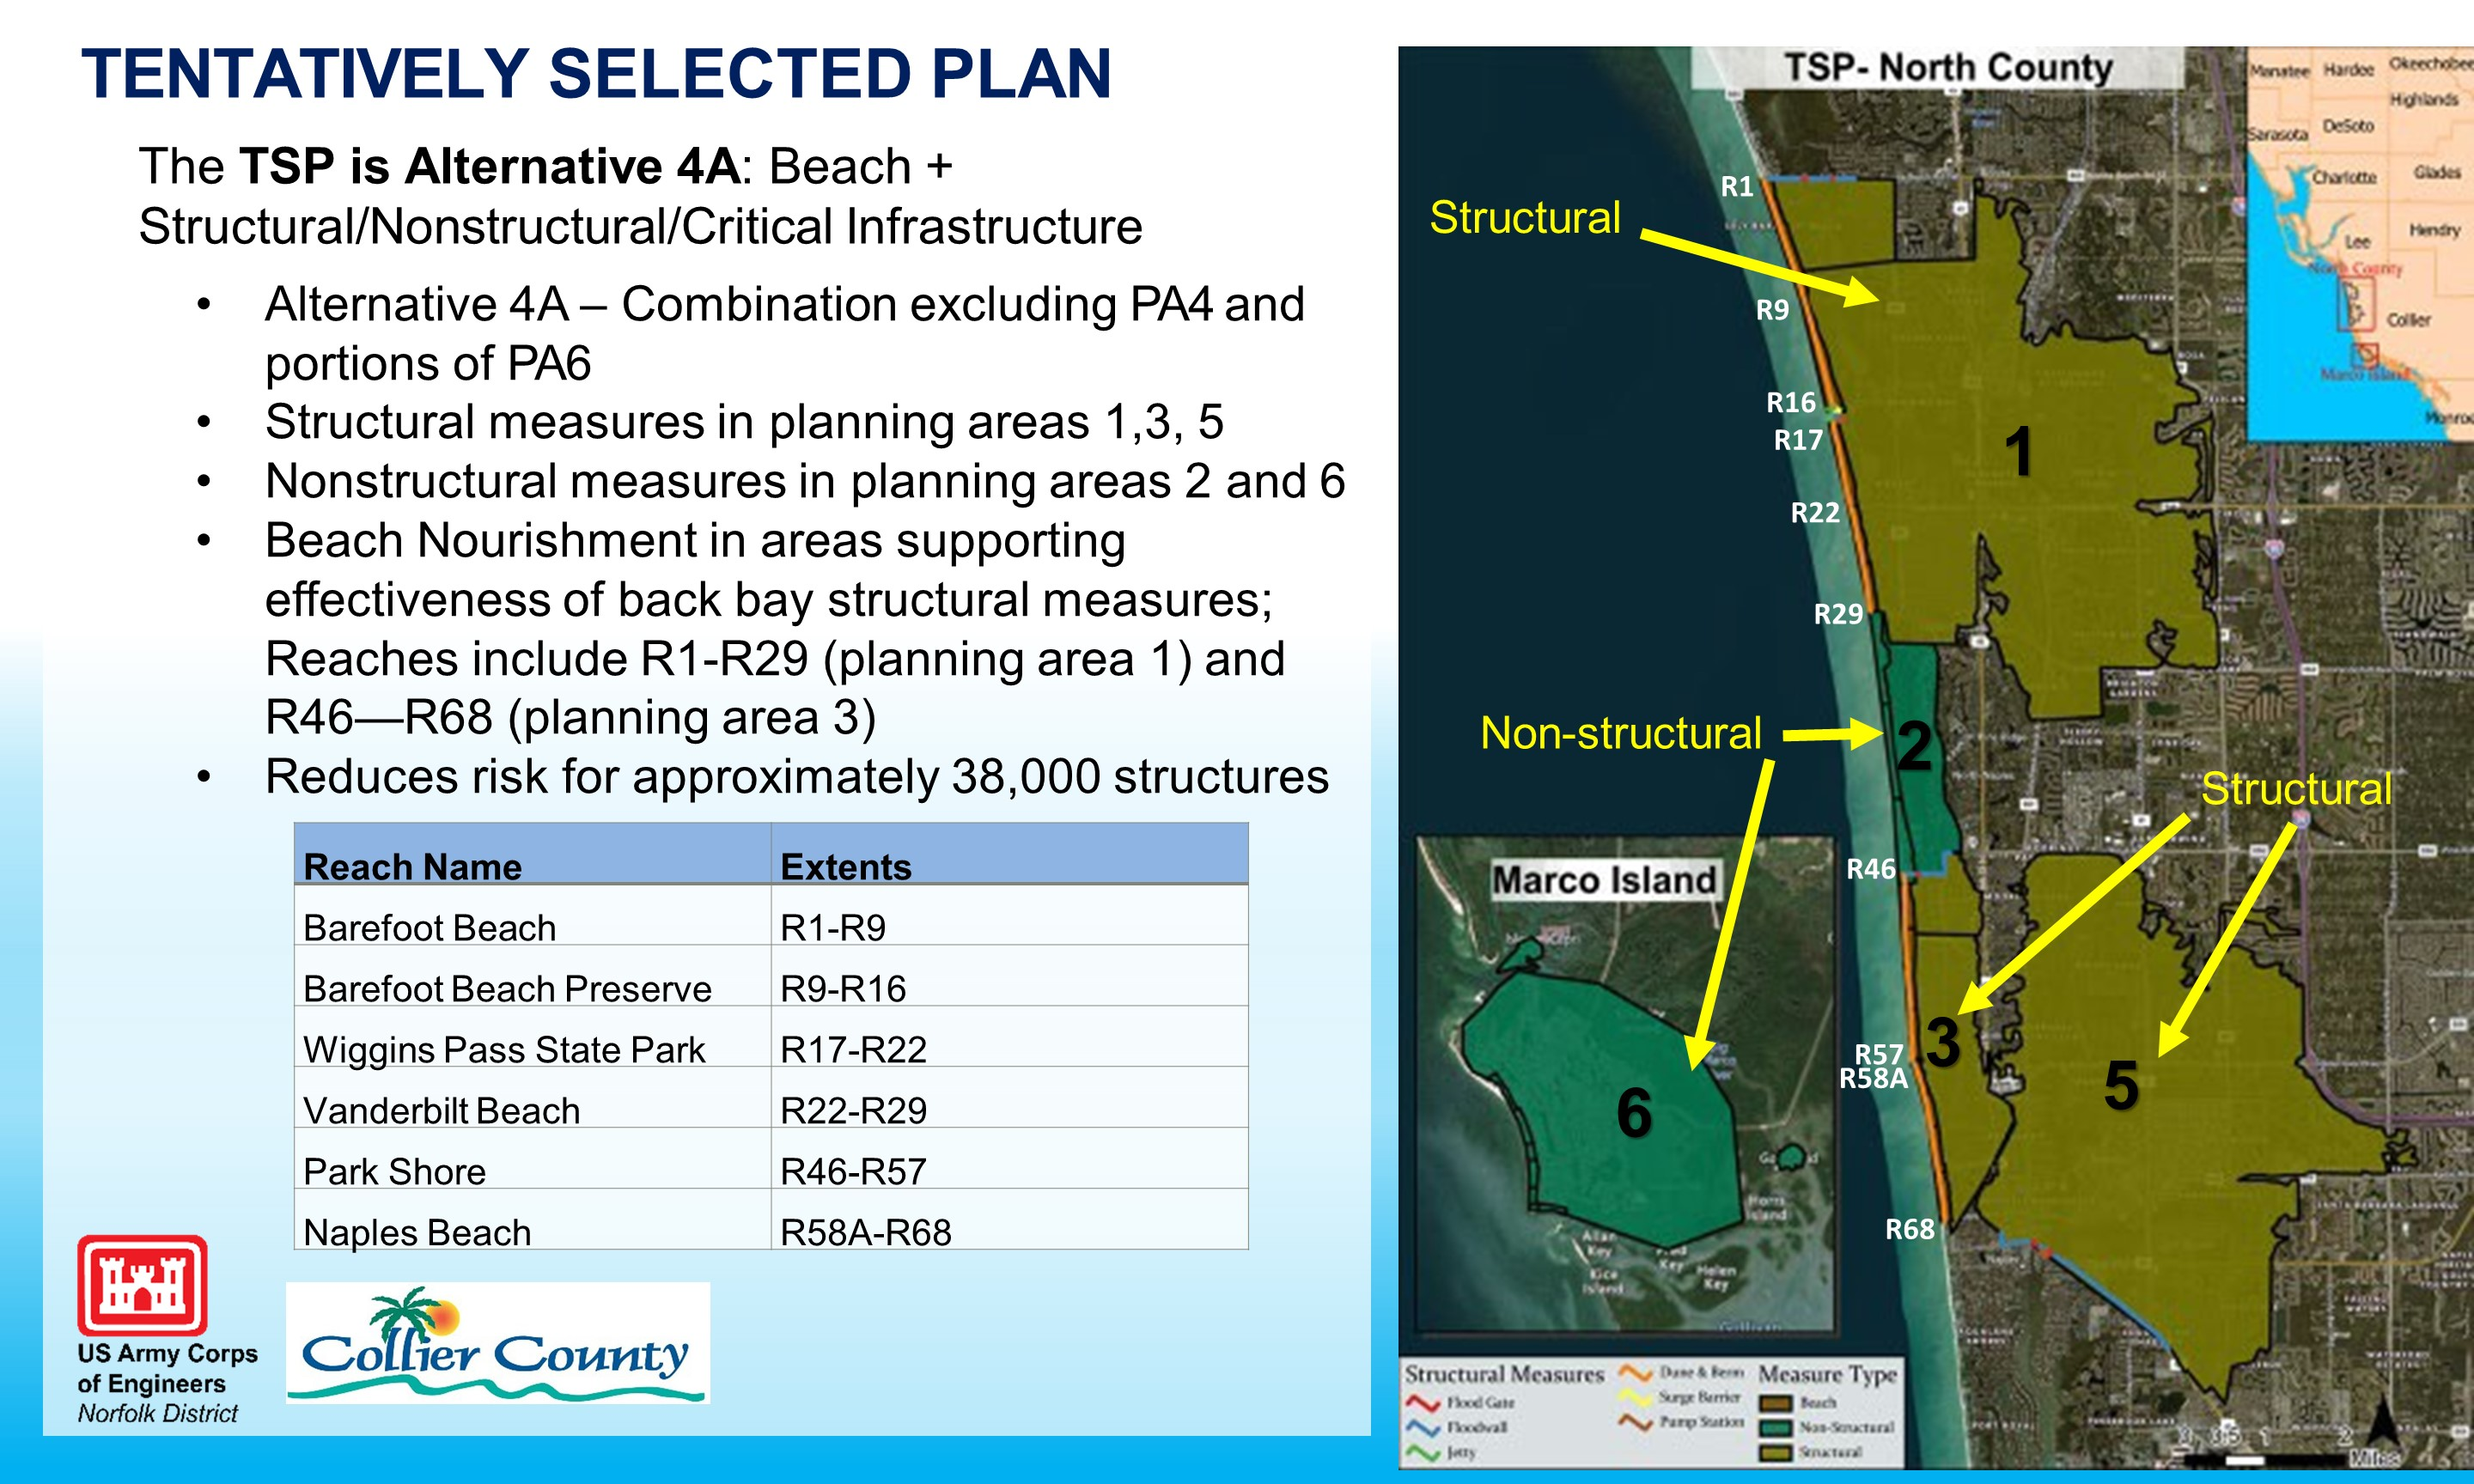 Collier County CSRM Tentatively Selected Plan